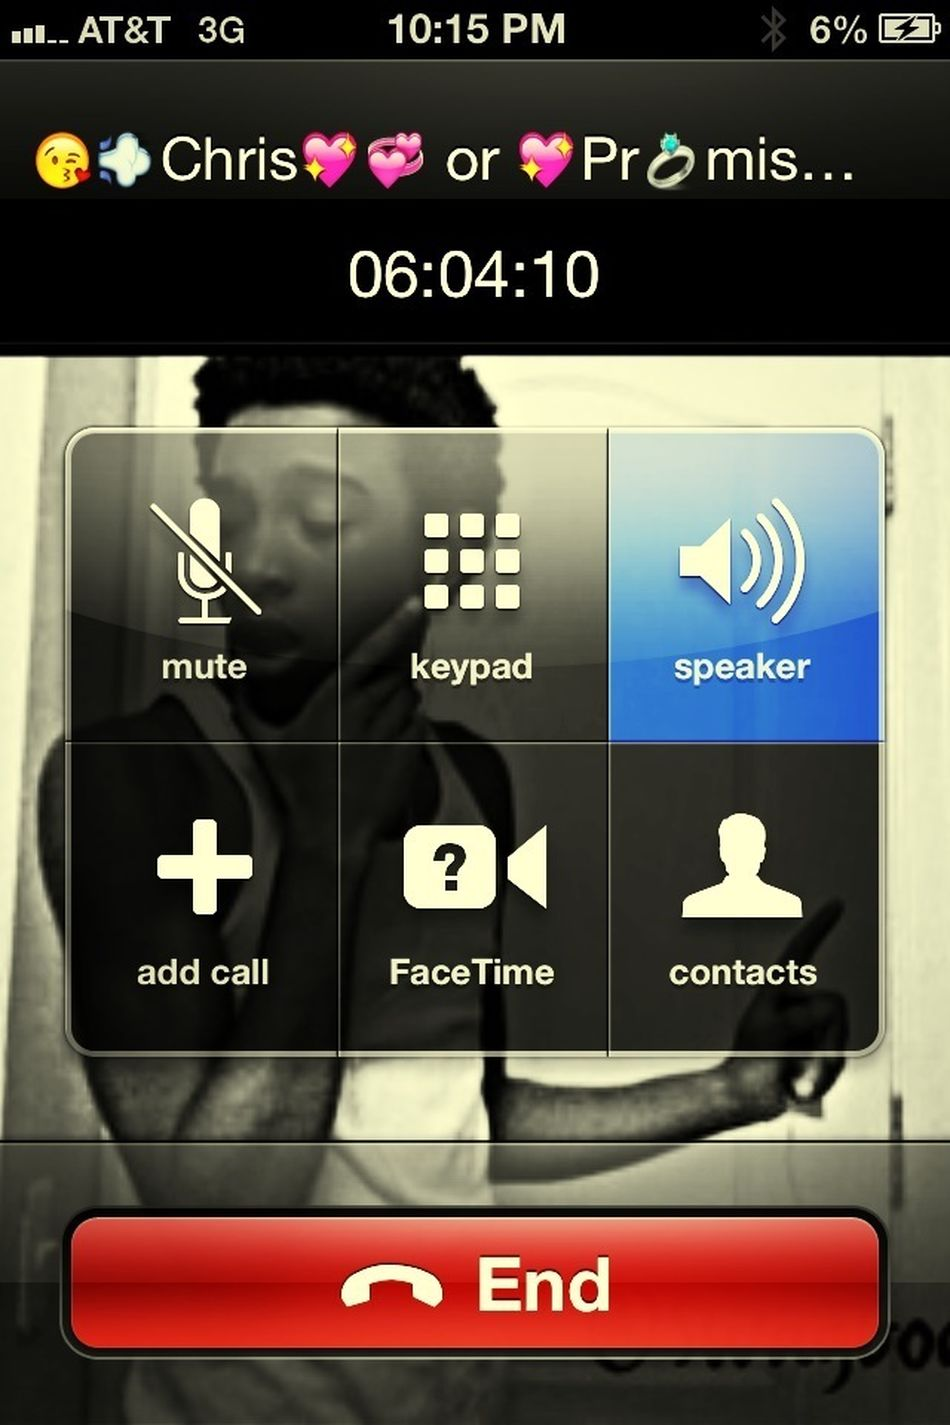 Smh N I Hate Talkin On The Phone With People